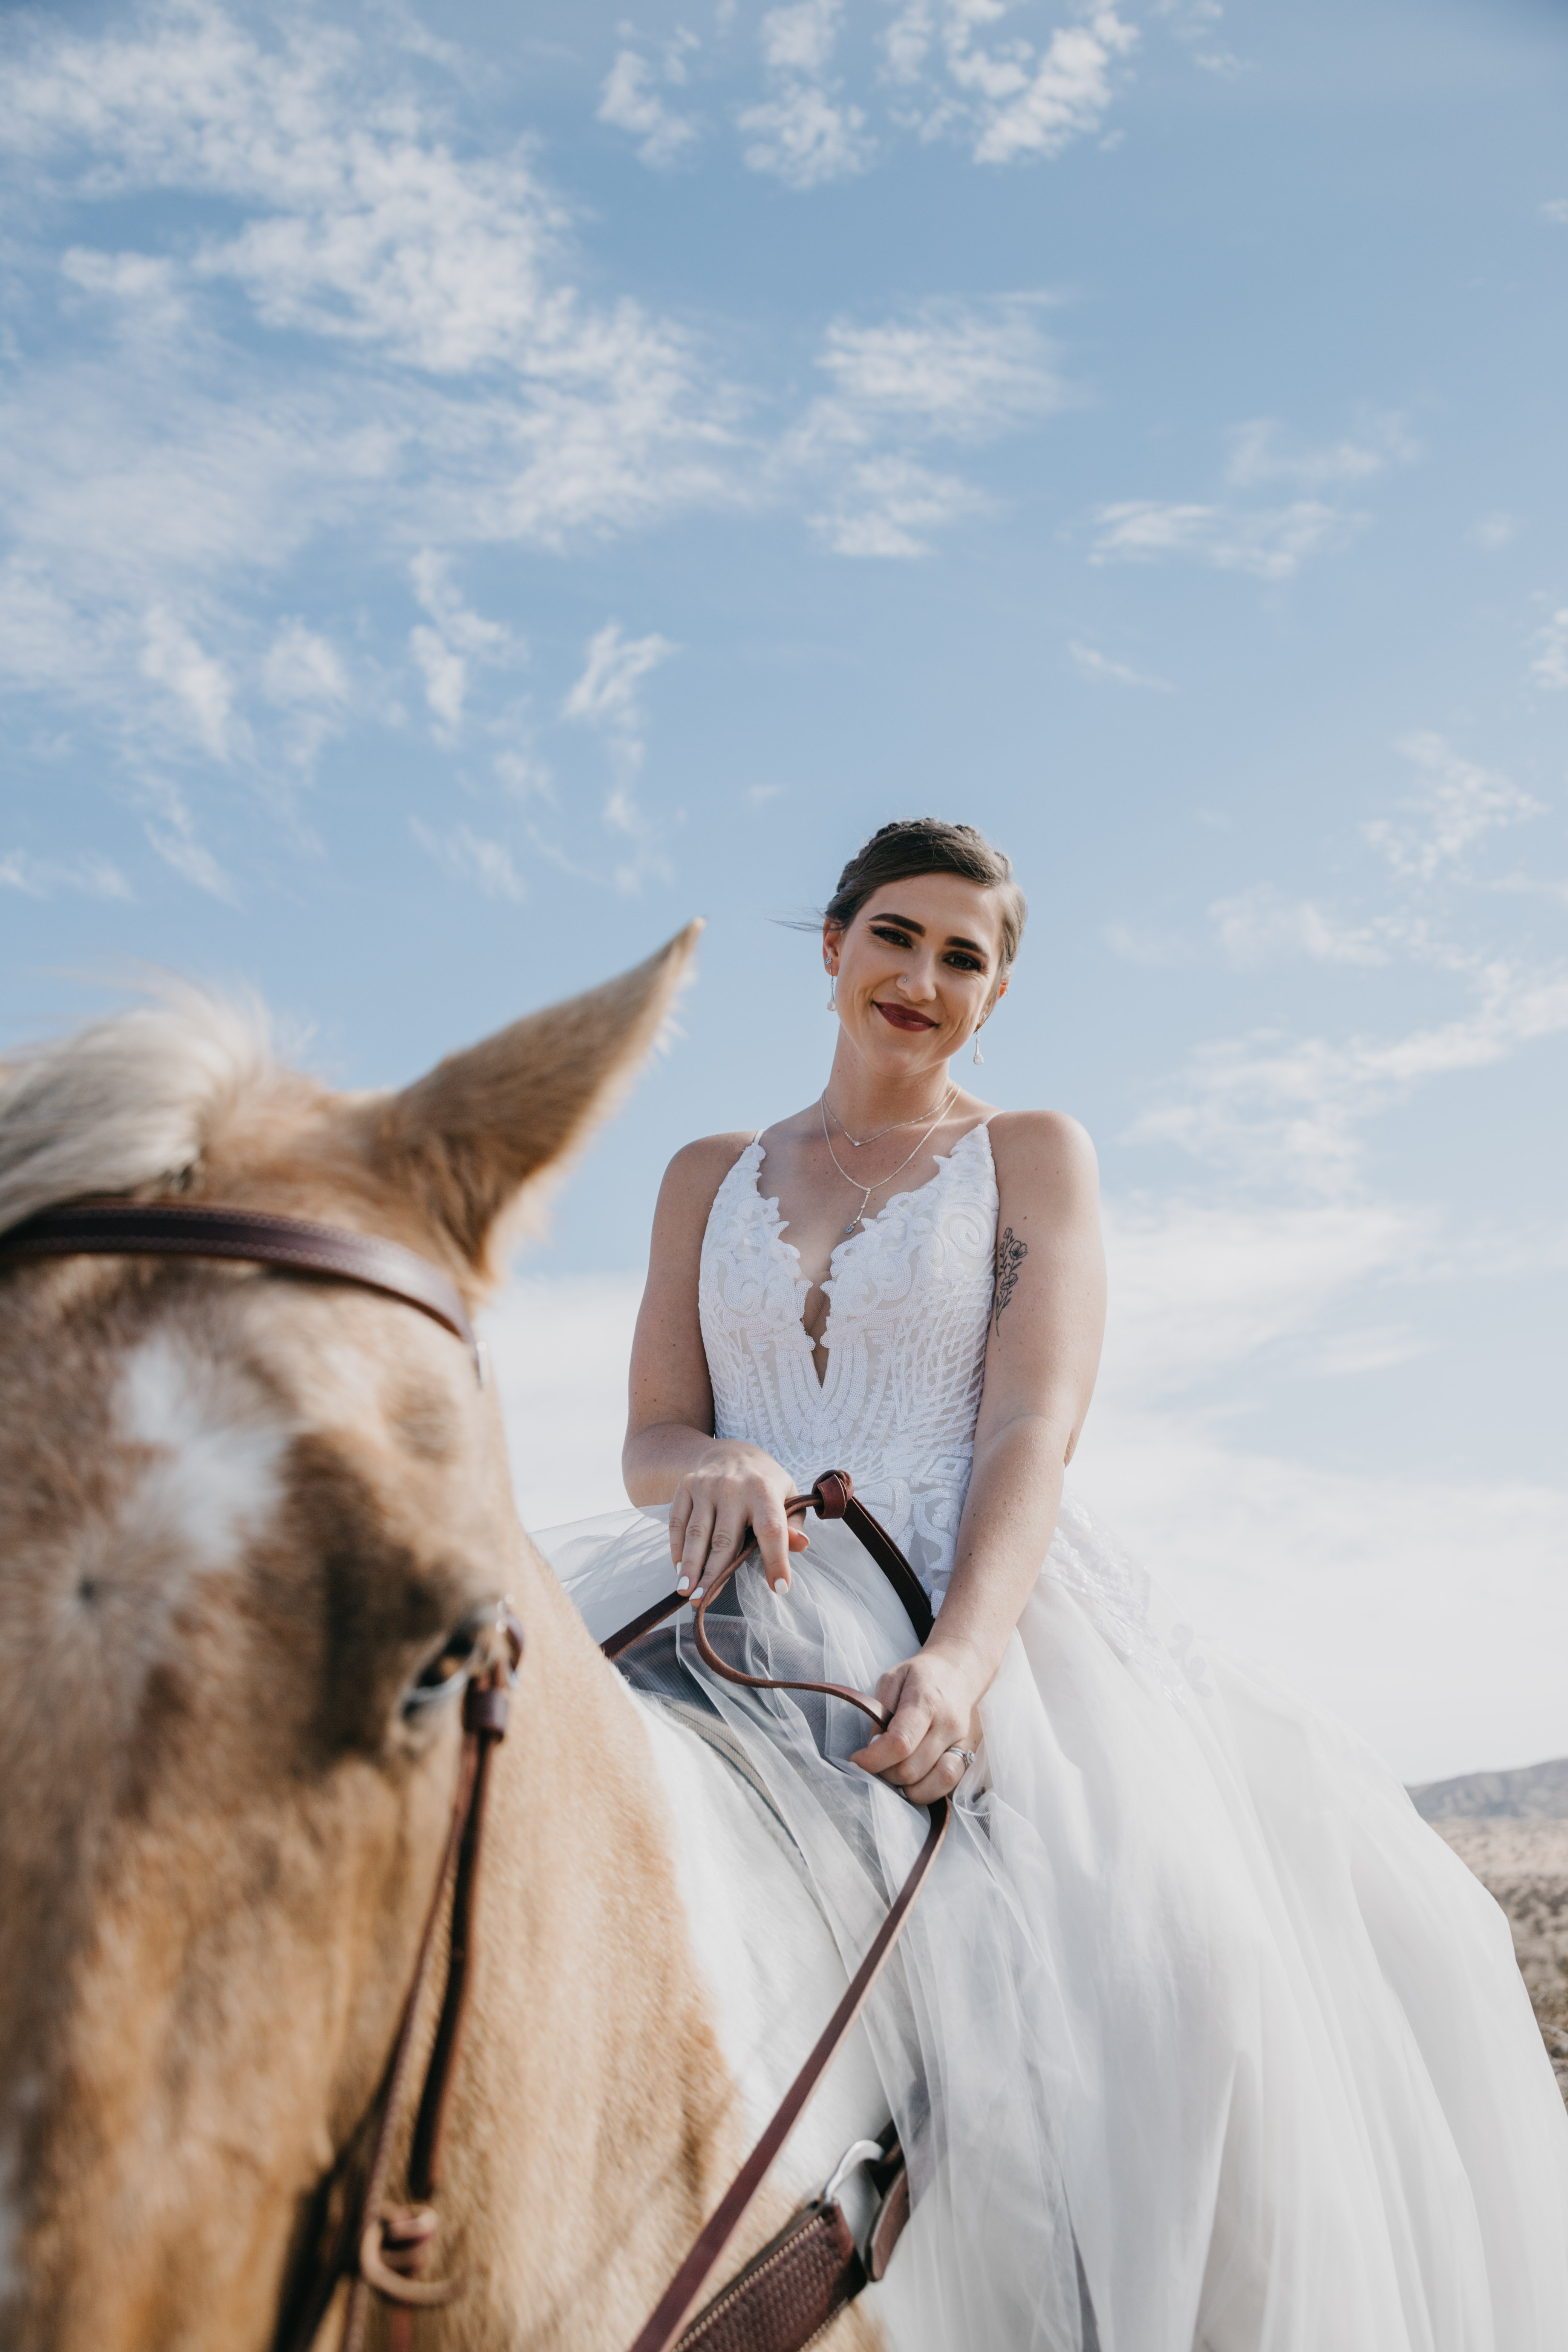 Bride portrait with horse, image by Fatima Elreda Photo